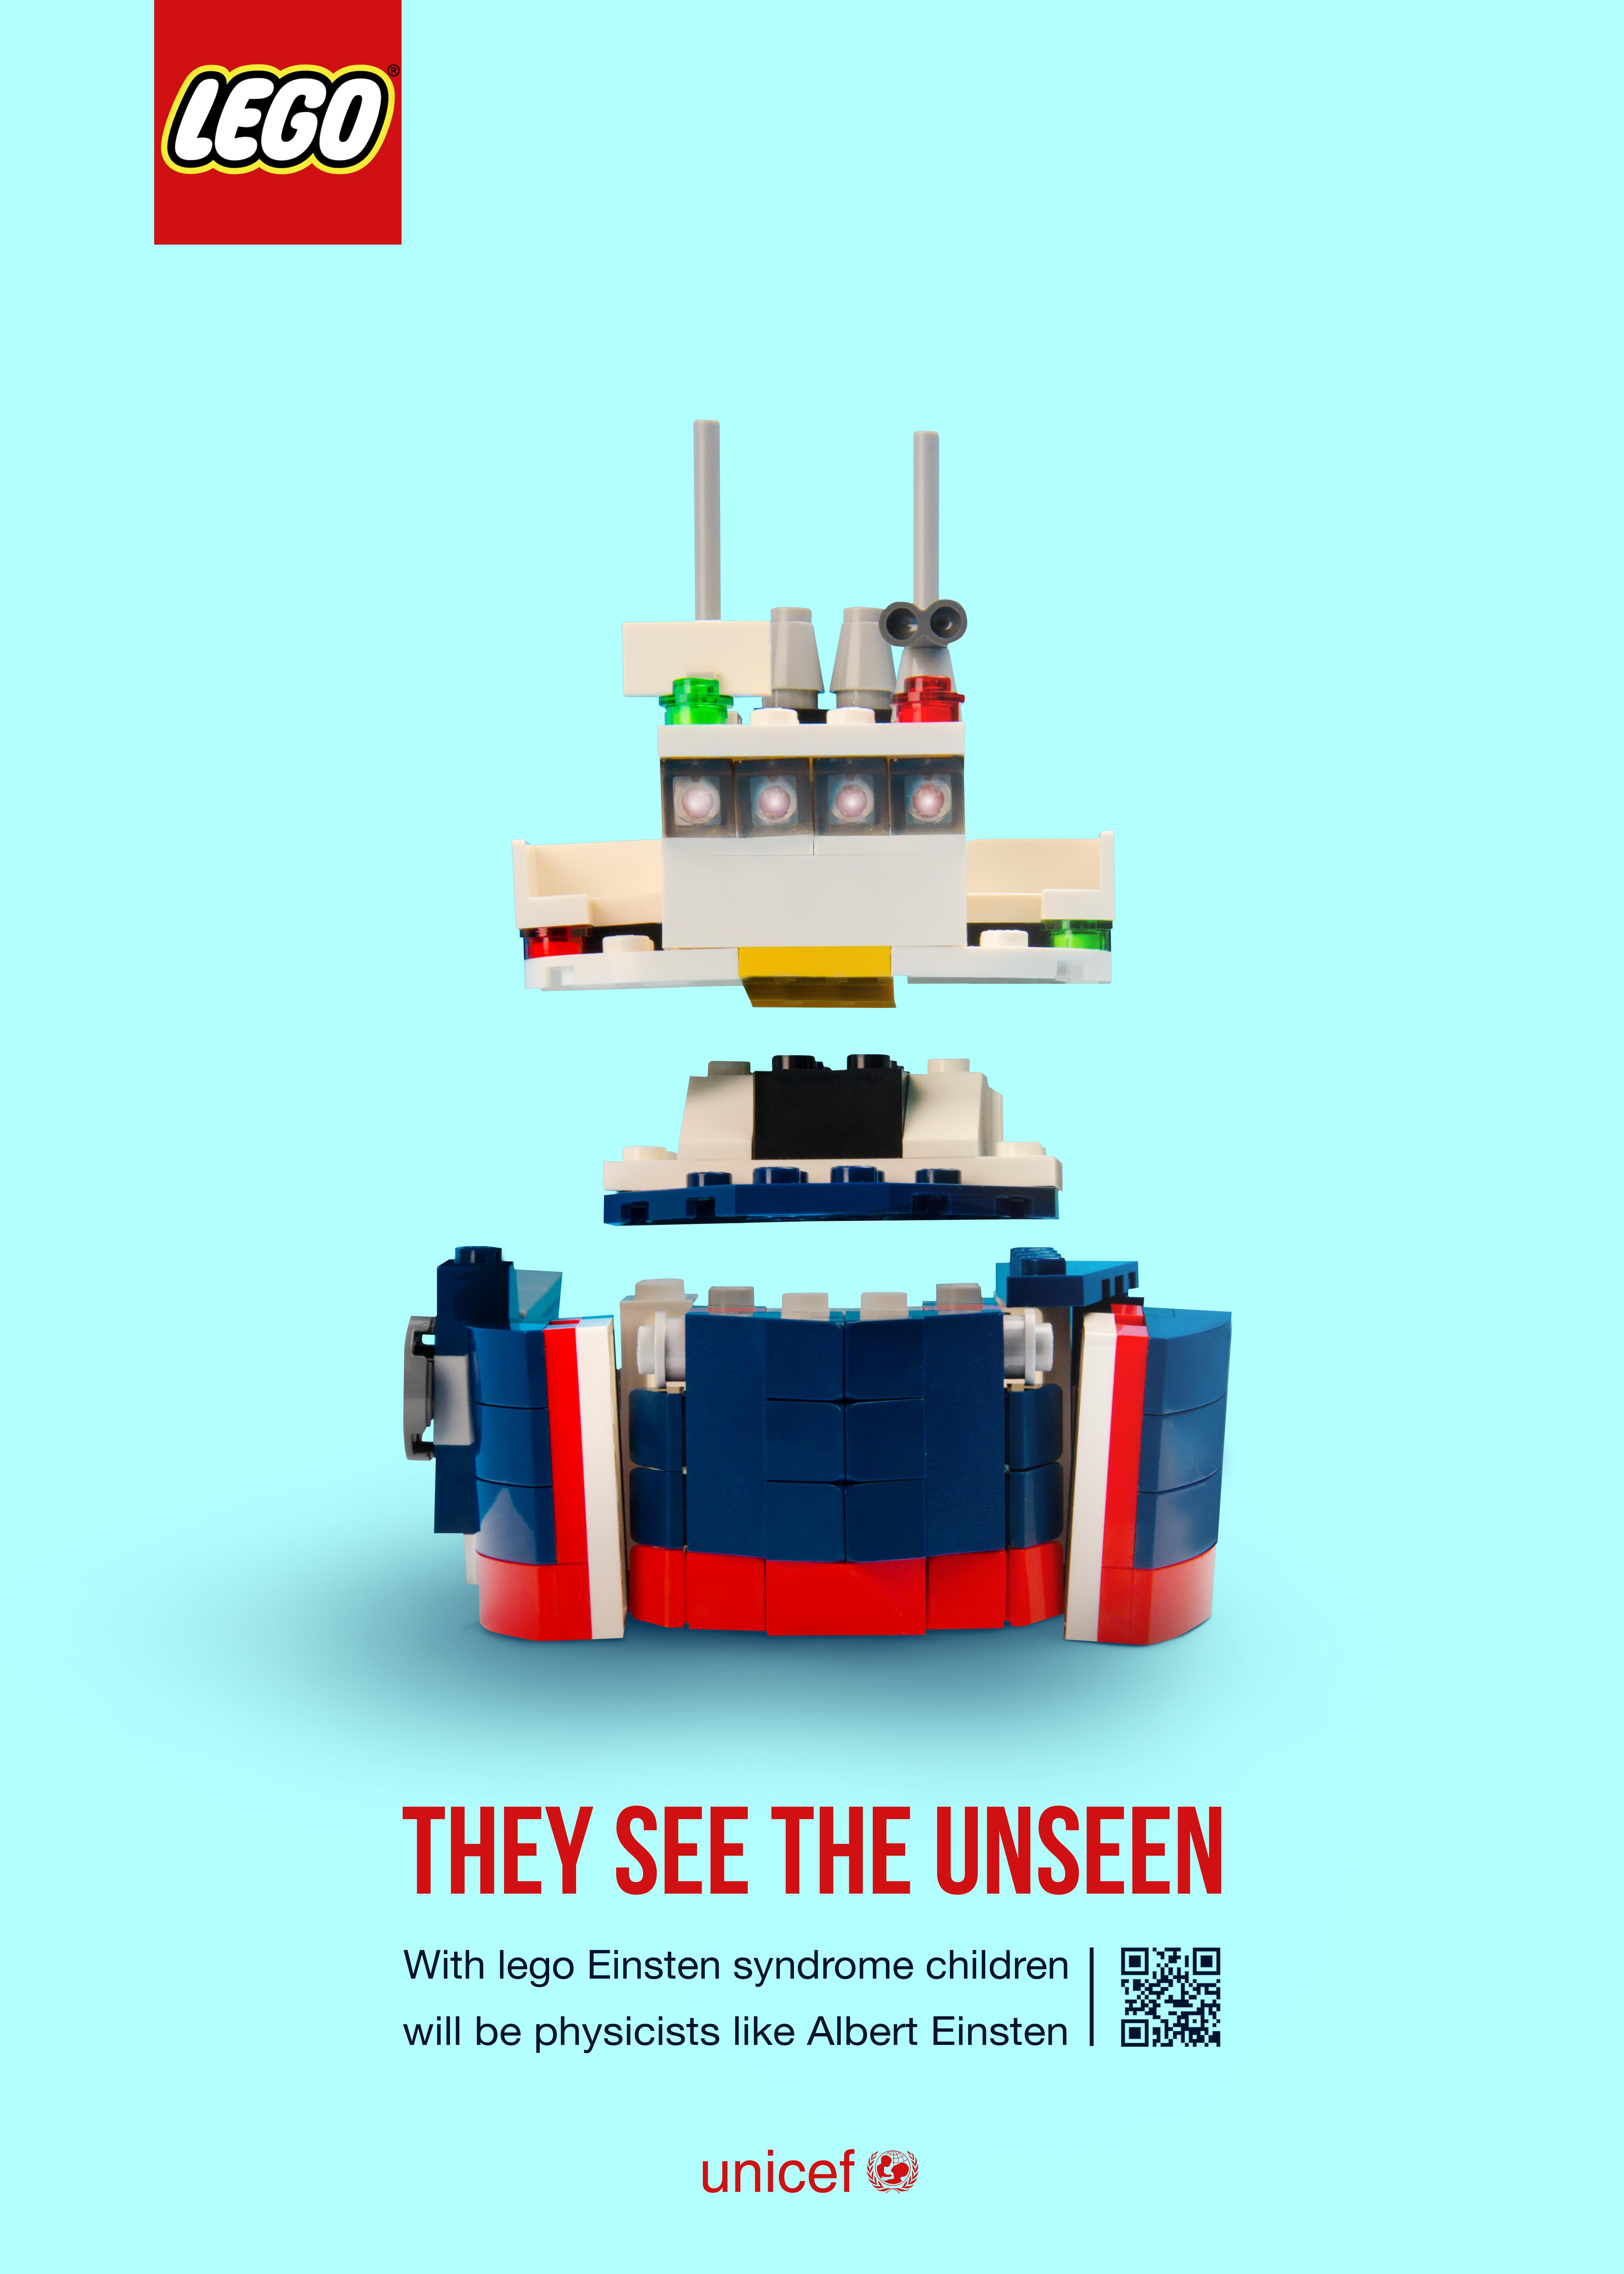 Lego: They See the Unseen